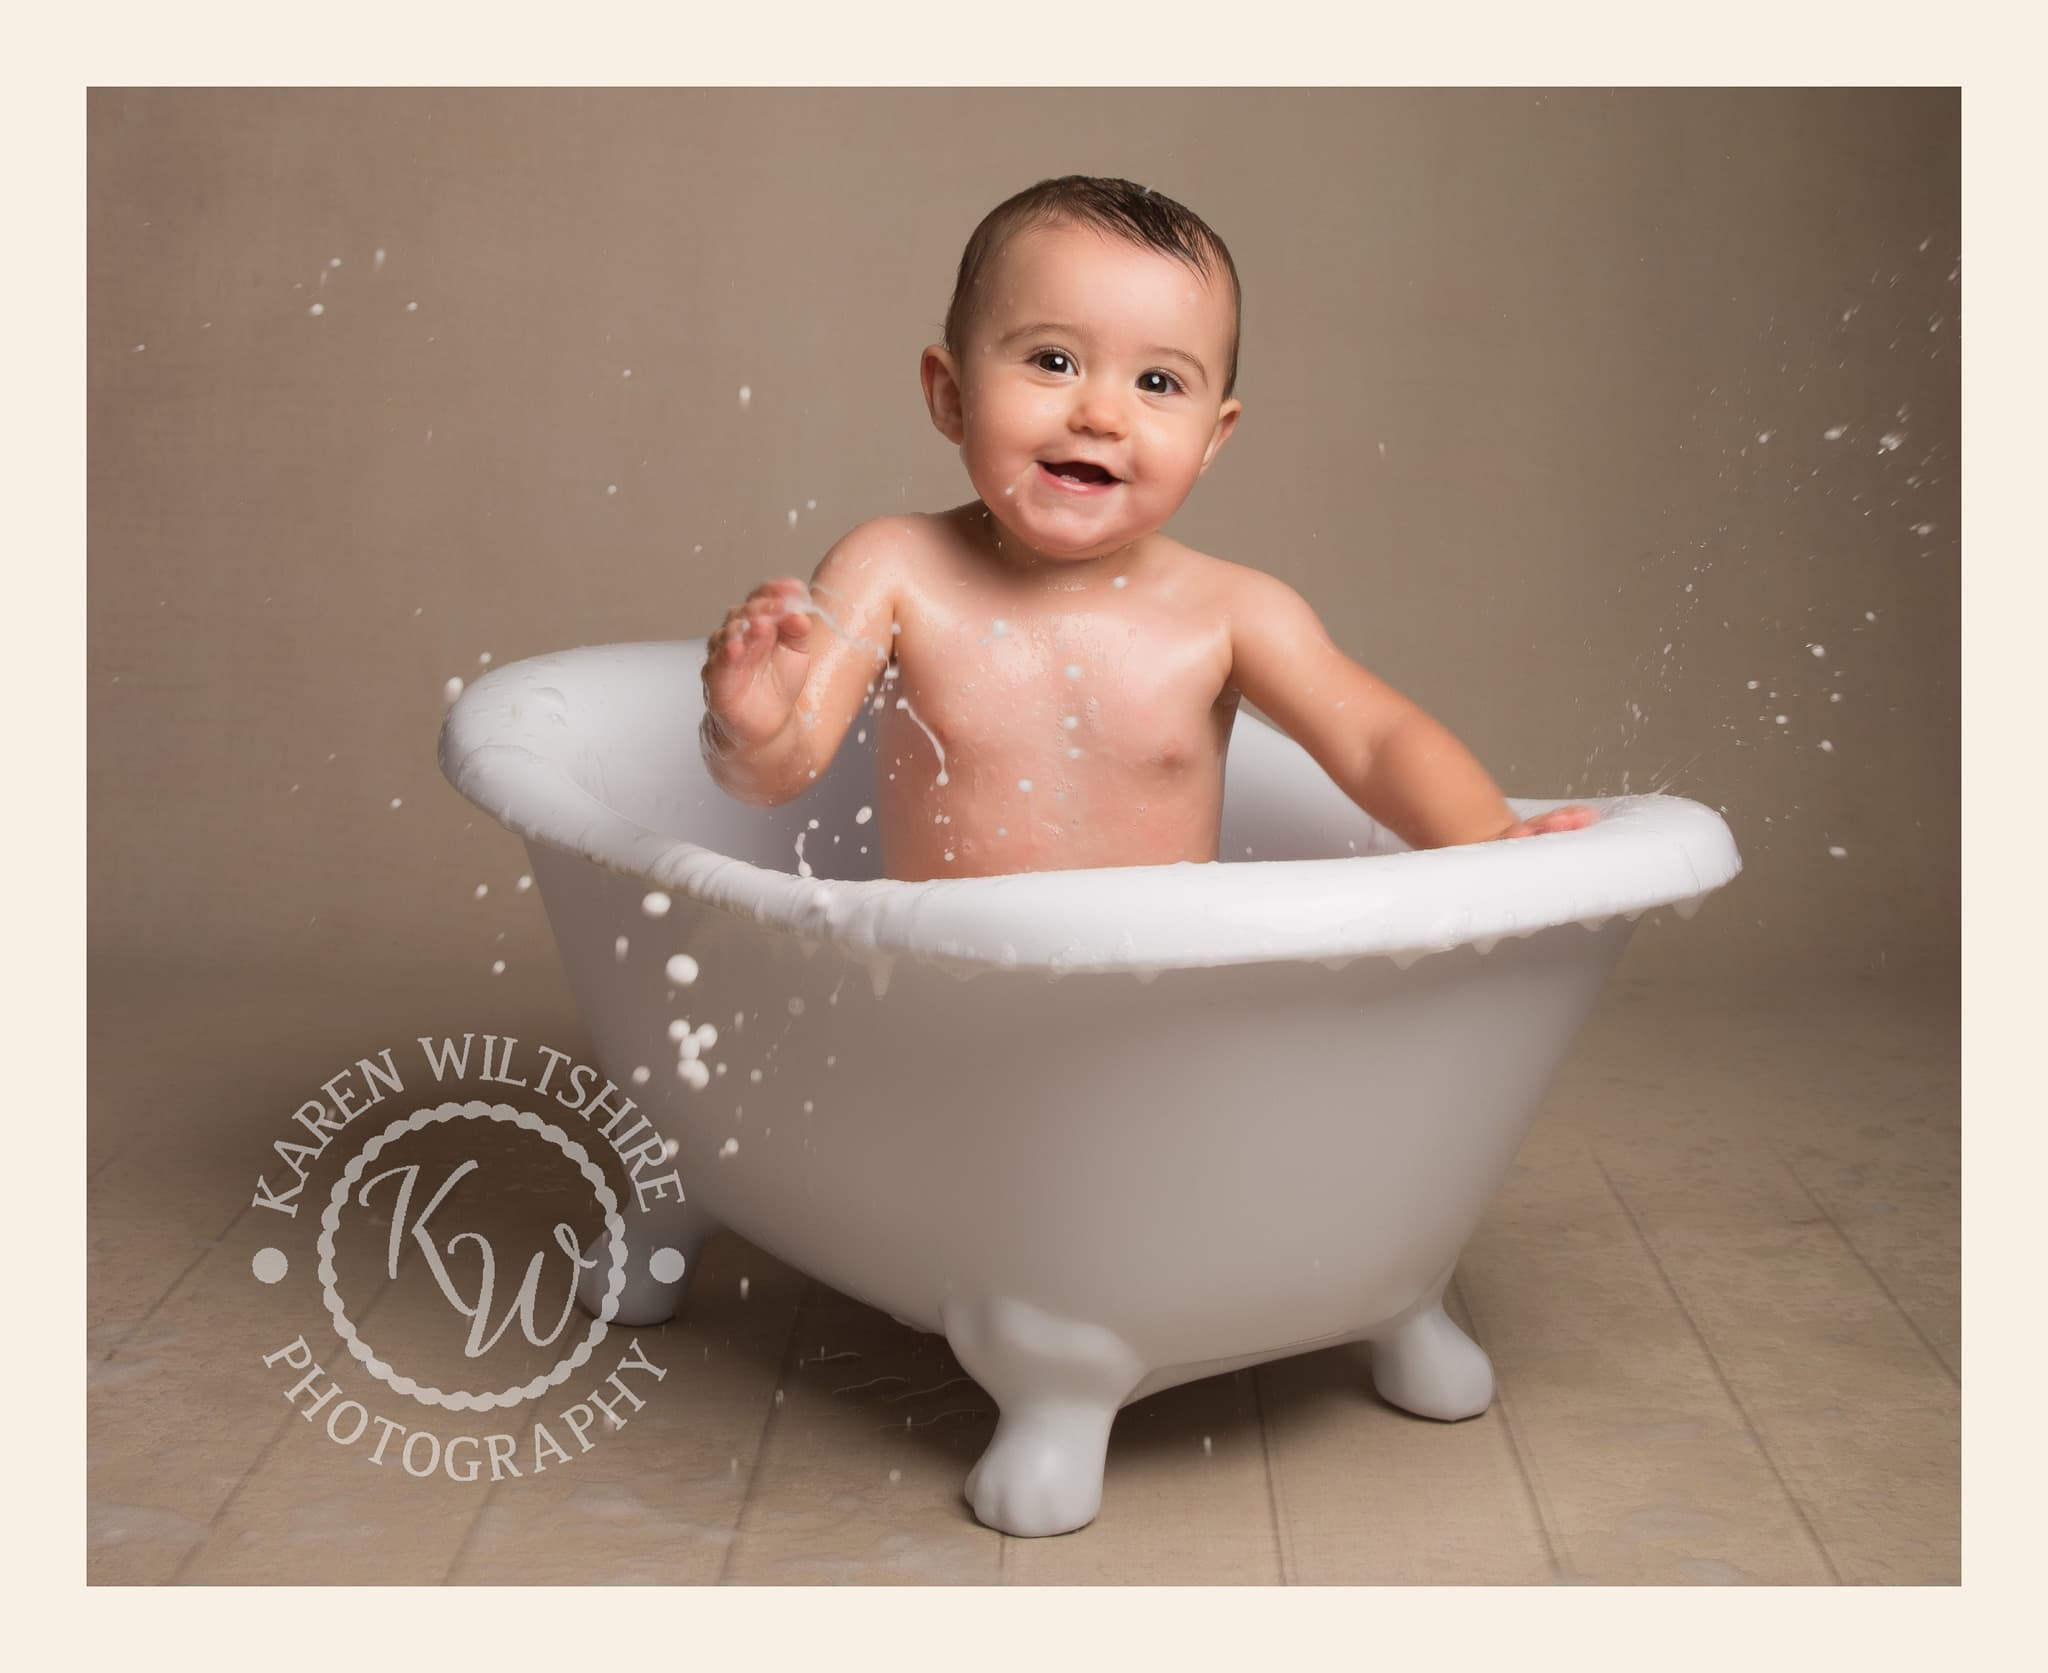 Baby Splashing in bath